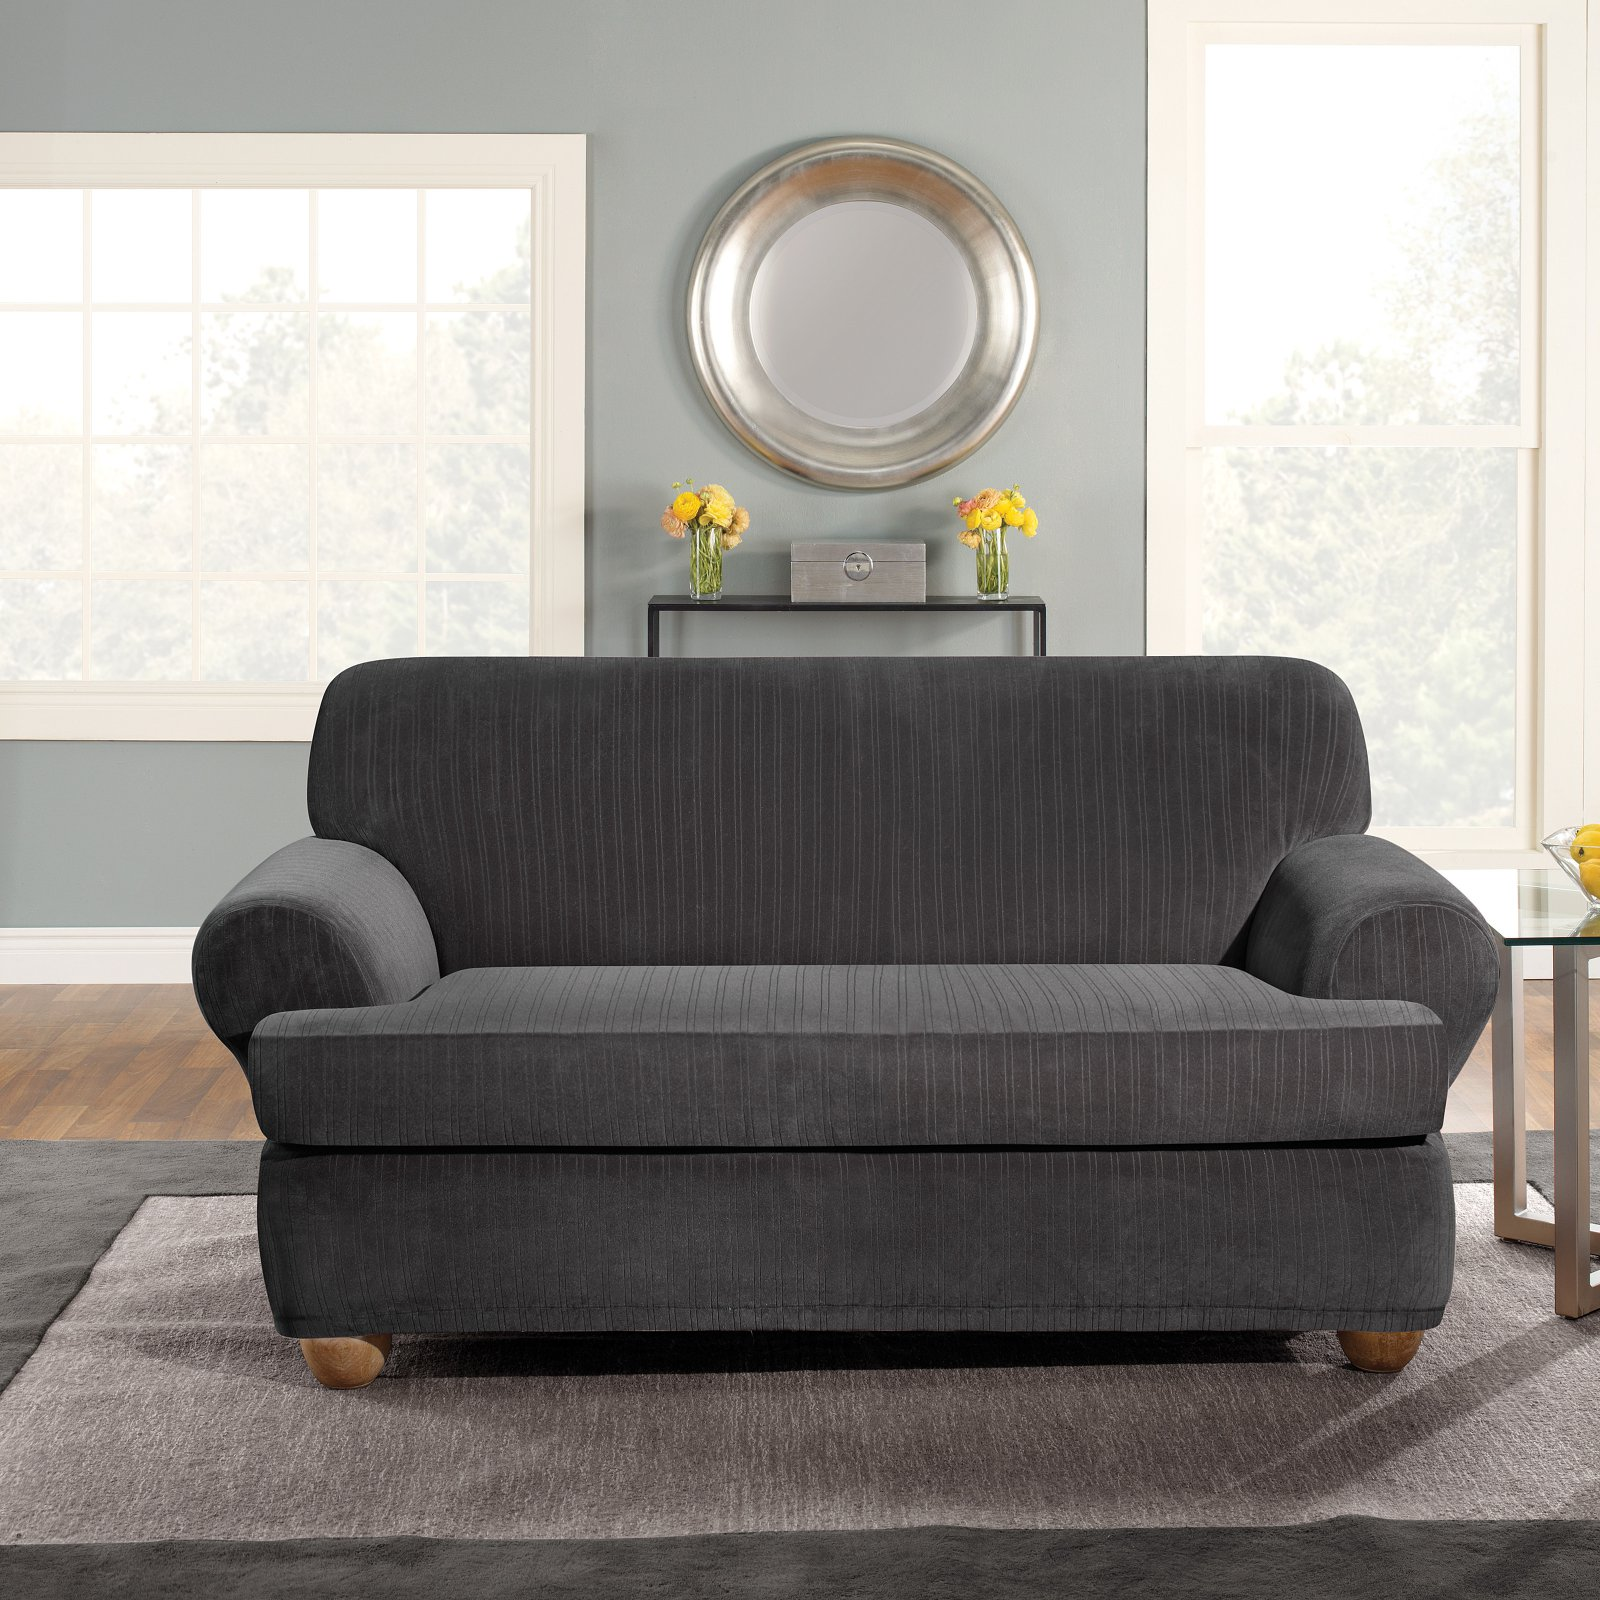 Surefit Stretch Pinstripe 2-Piece T-Cushion Loveseat Slipcover, Black